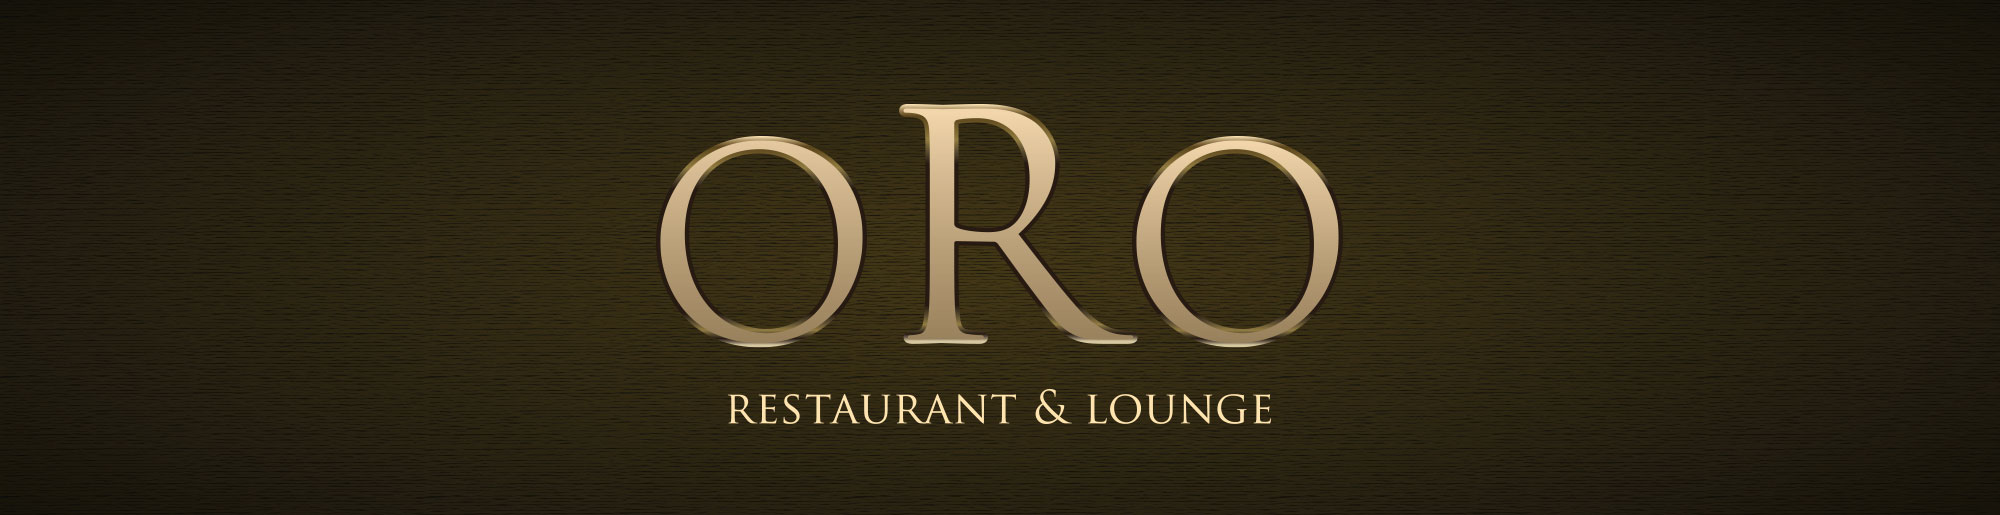 oro-tapas-restaurant-and-lounge-downtown-raleigh-nc